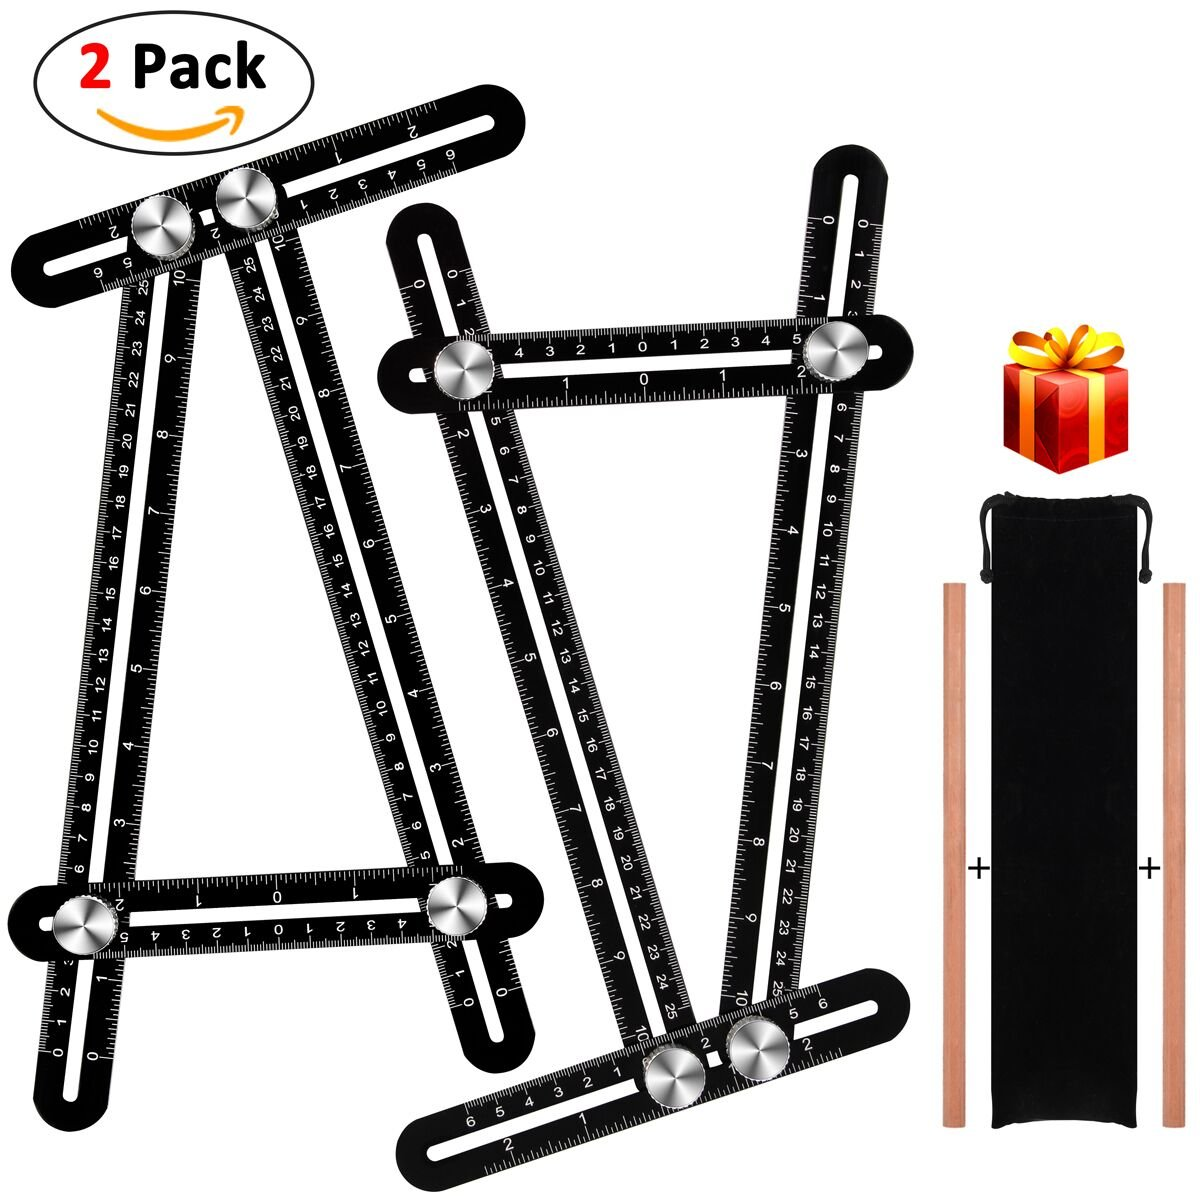 2 Pack Multi Angle Measuring Ruler Handymen Craftsmen Precise Premium Aluminum Alloy Easy Angle Ruler Metal Template Tool Layout Tool with Perforated Mold for Builders Carpenters